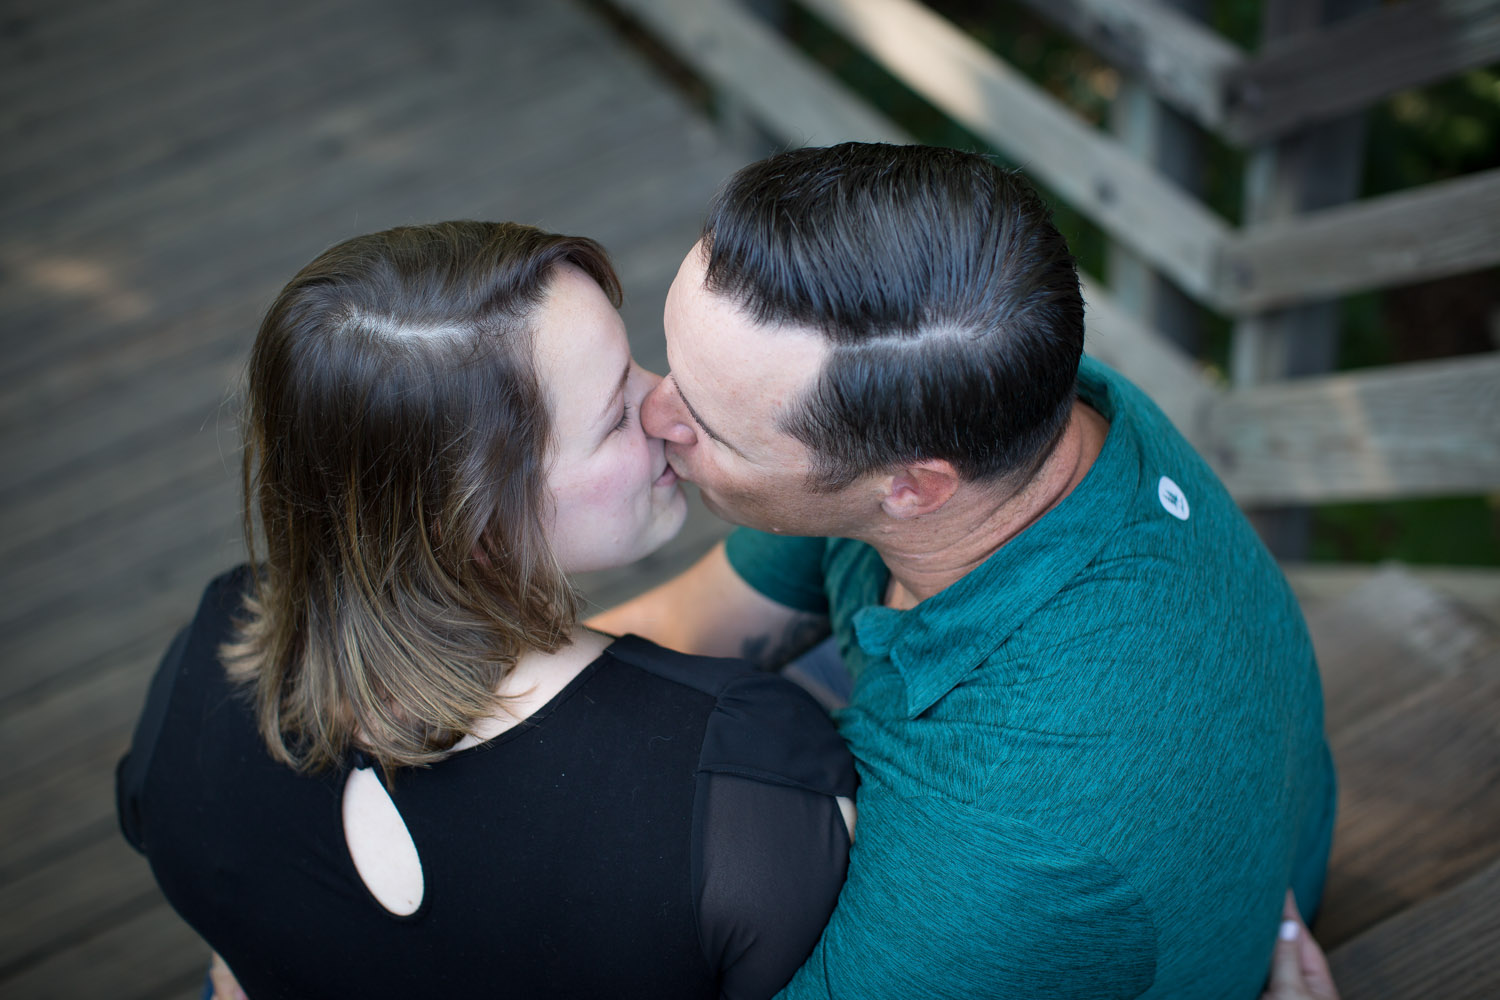 05-minneapolis-engagement-photographer-kisses-mahonen-photography.jpg